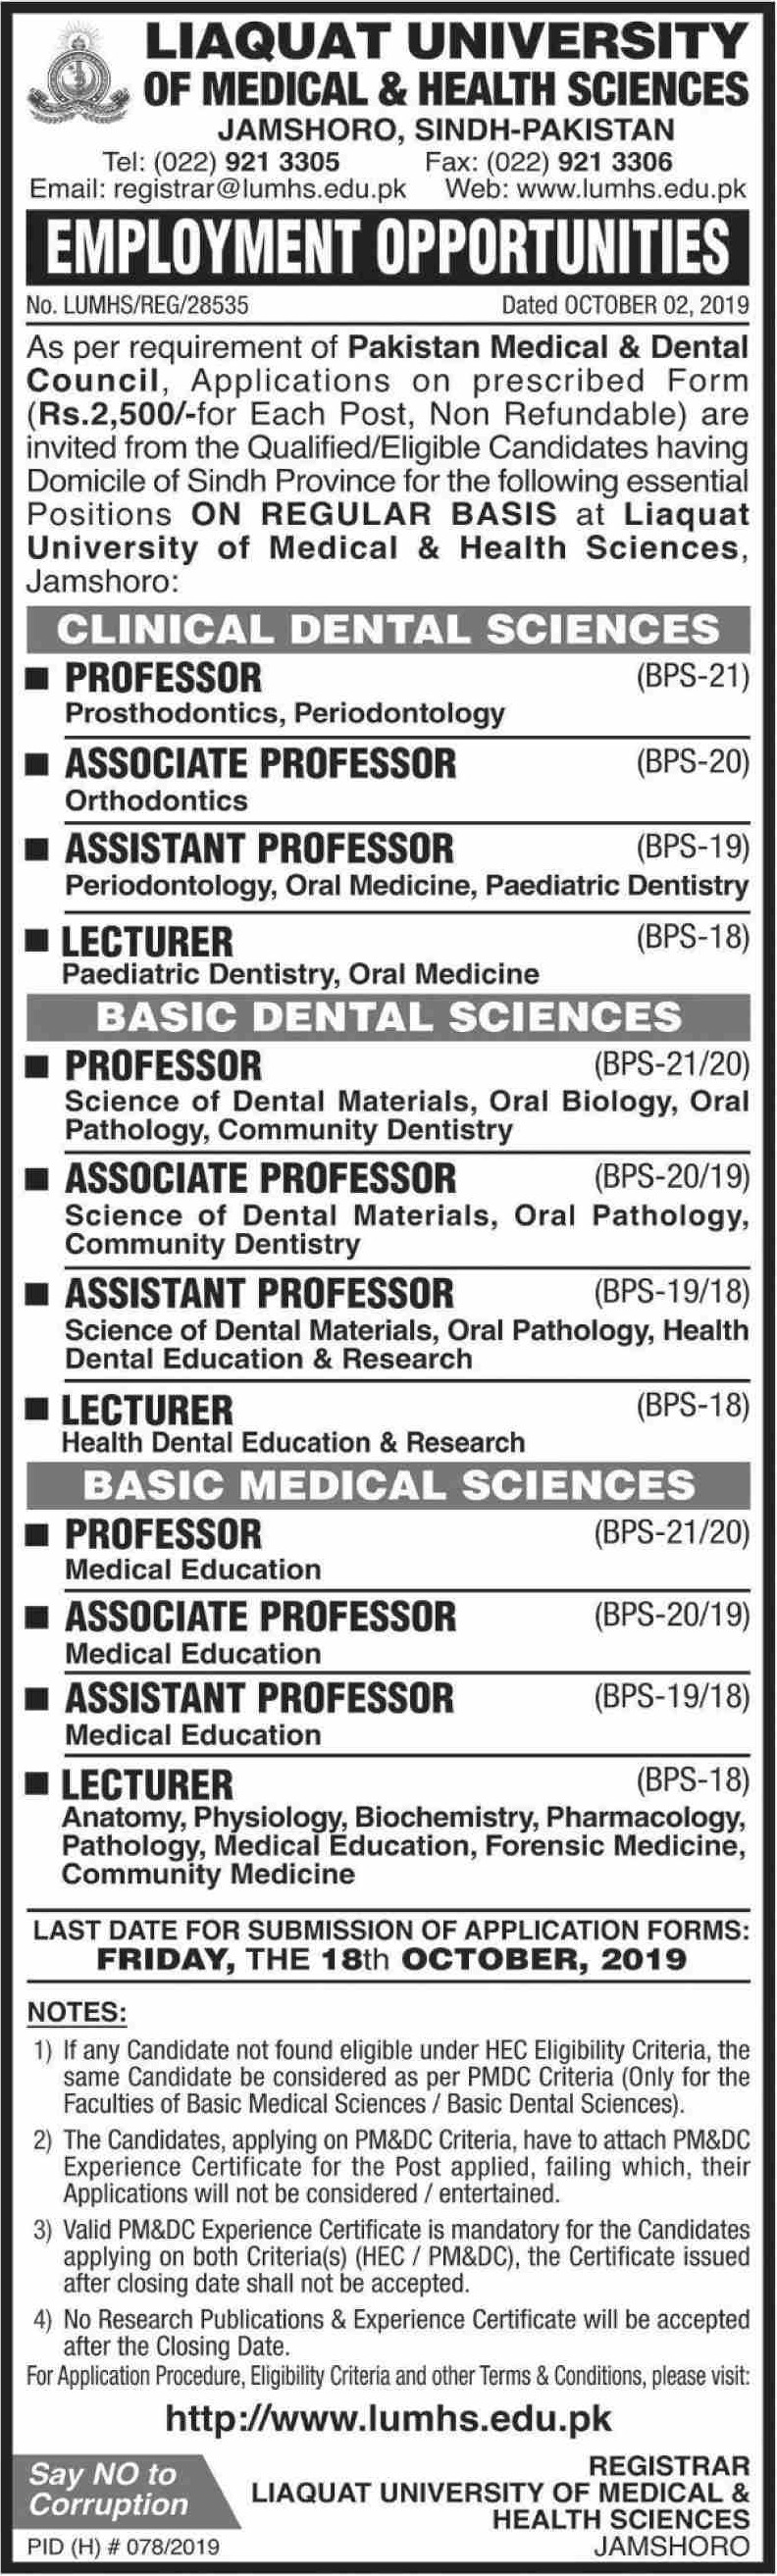 LUMHS Jobs 2019 Liaquat University of Medical & Health Sciences